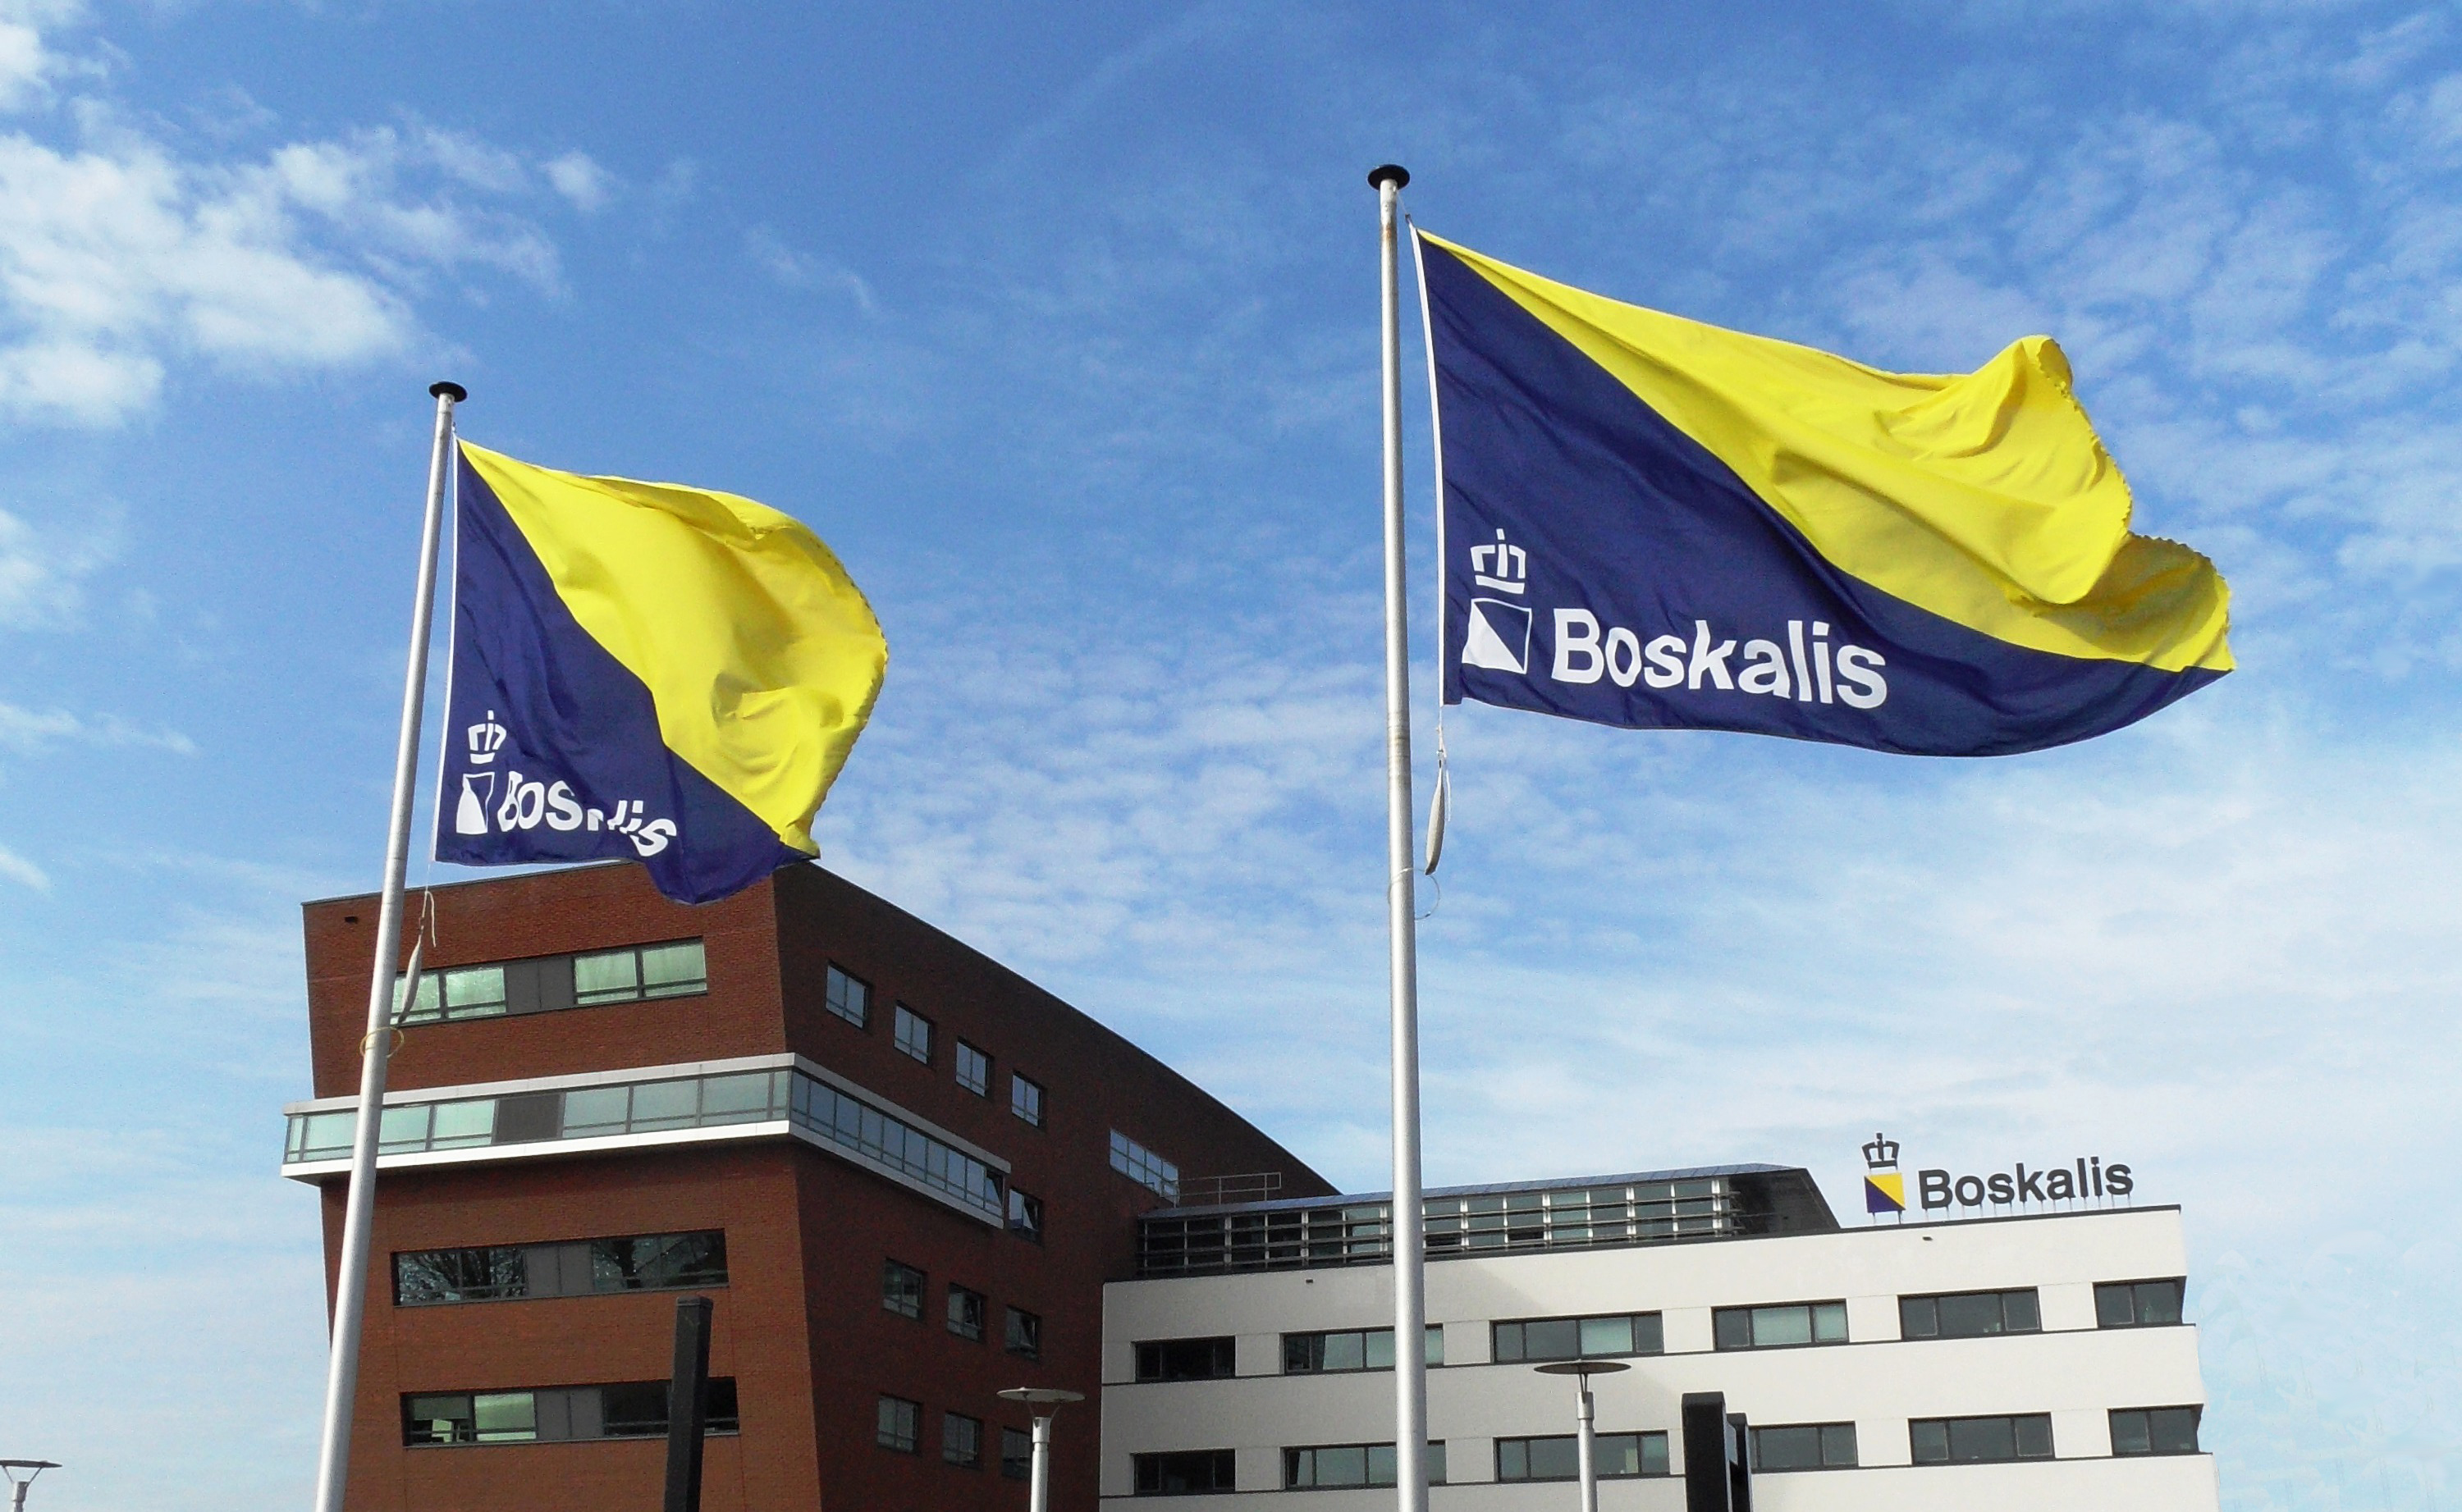 Boskalis expands Salvage presence in the US by acquiring Ardent Americas